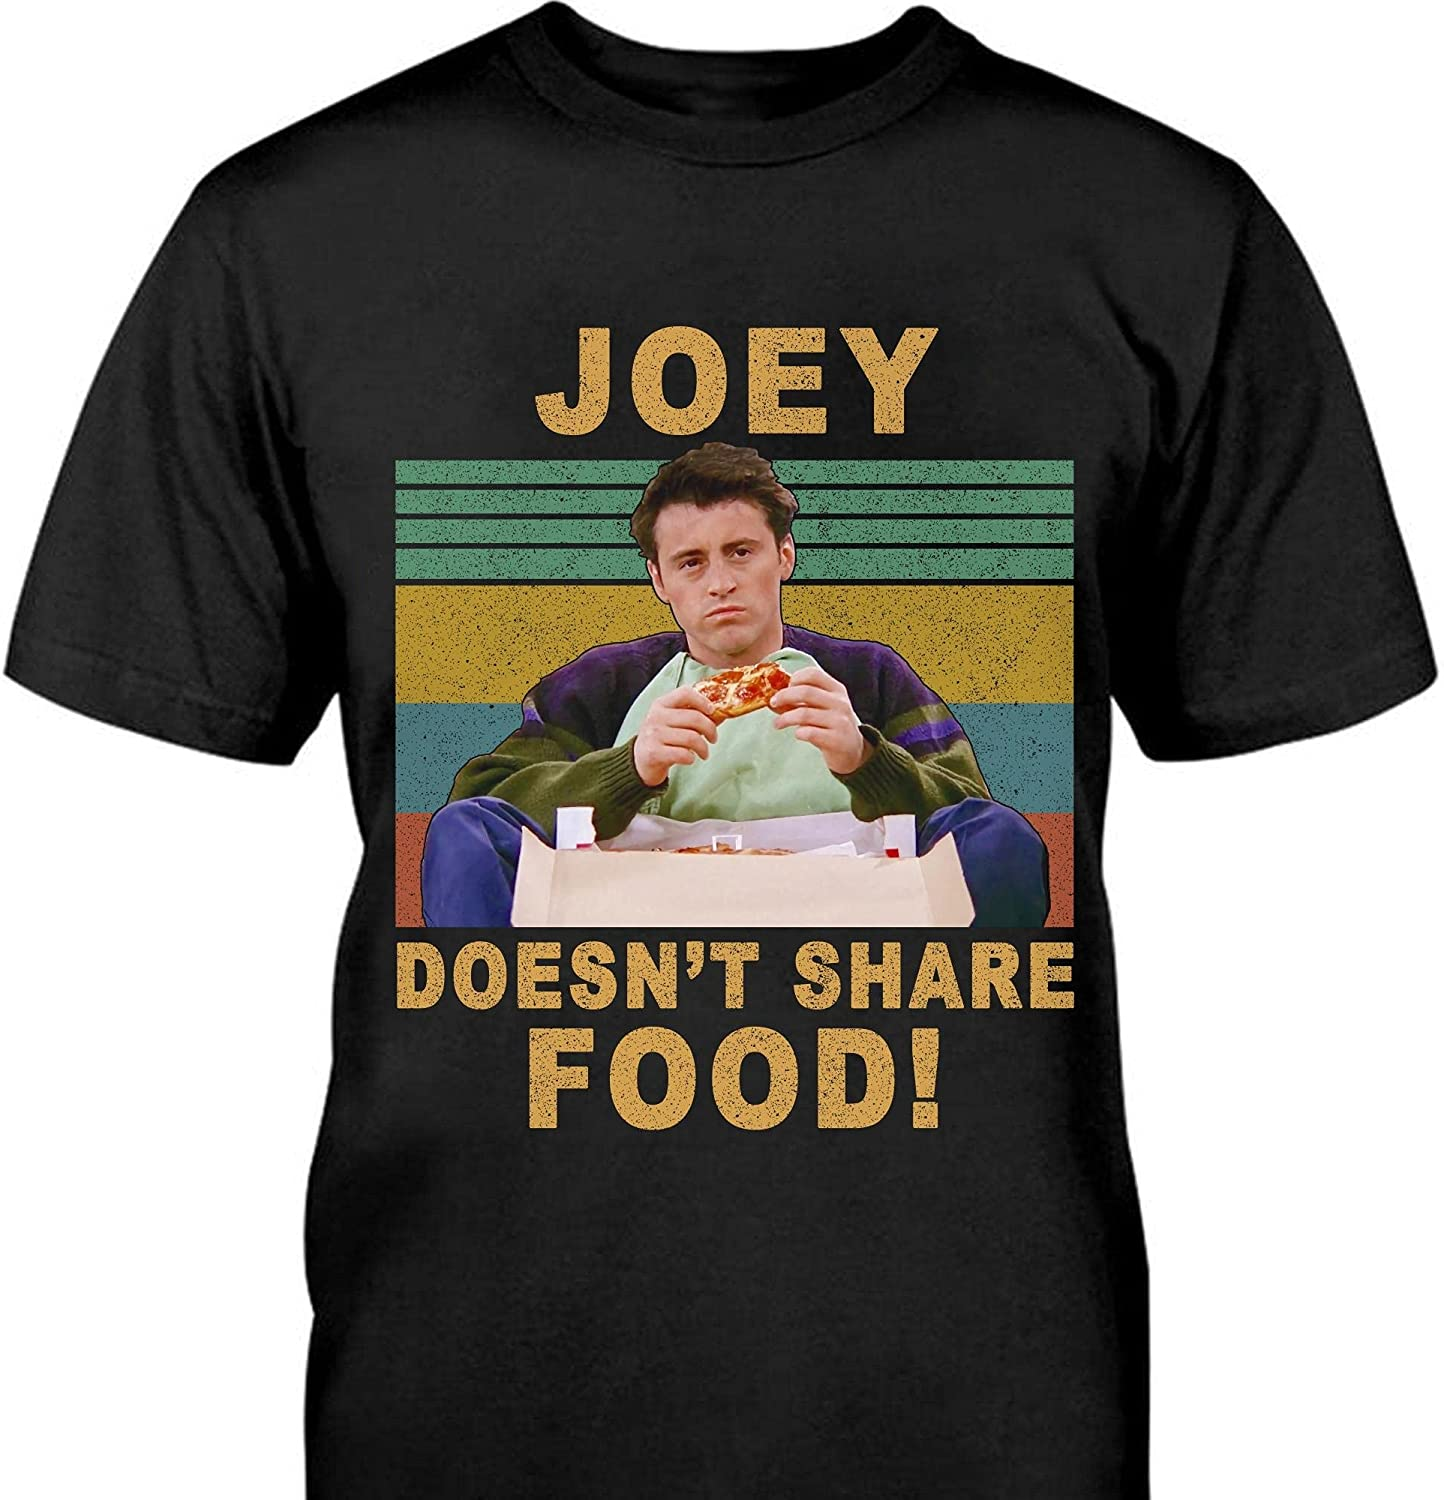 Tv Show Friends Joey Shirt Joey Doesn't Share Food T-Shirt Vintage Movie 80S Gift HS0104266